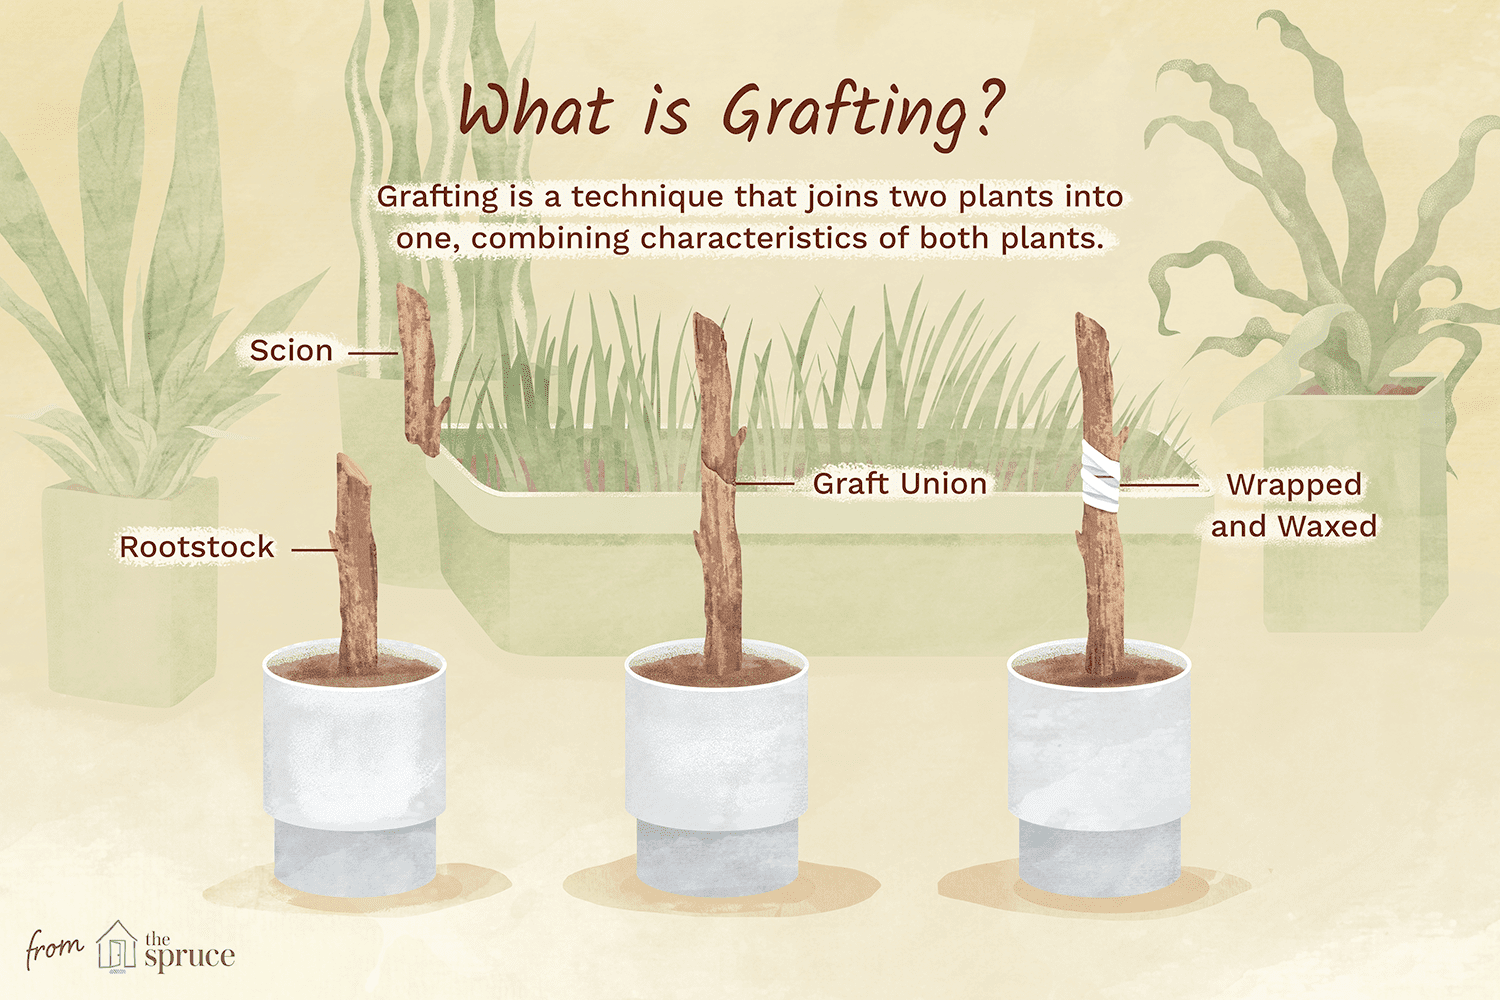 illustration about grafting plants